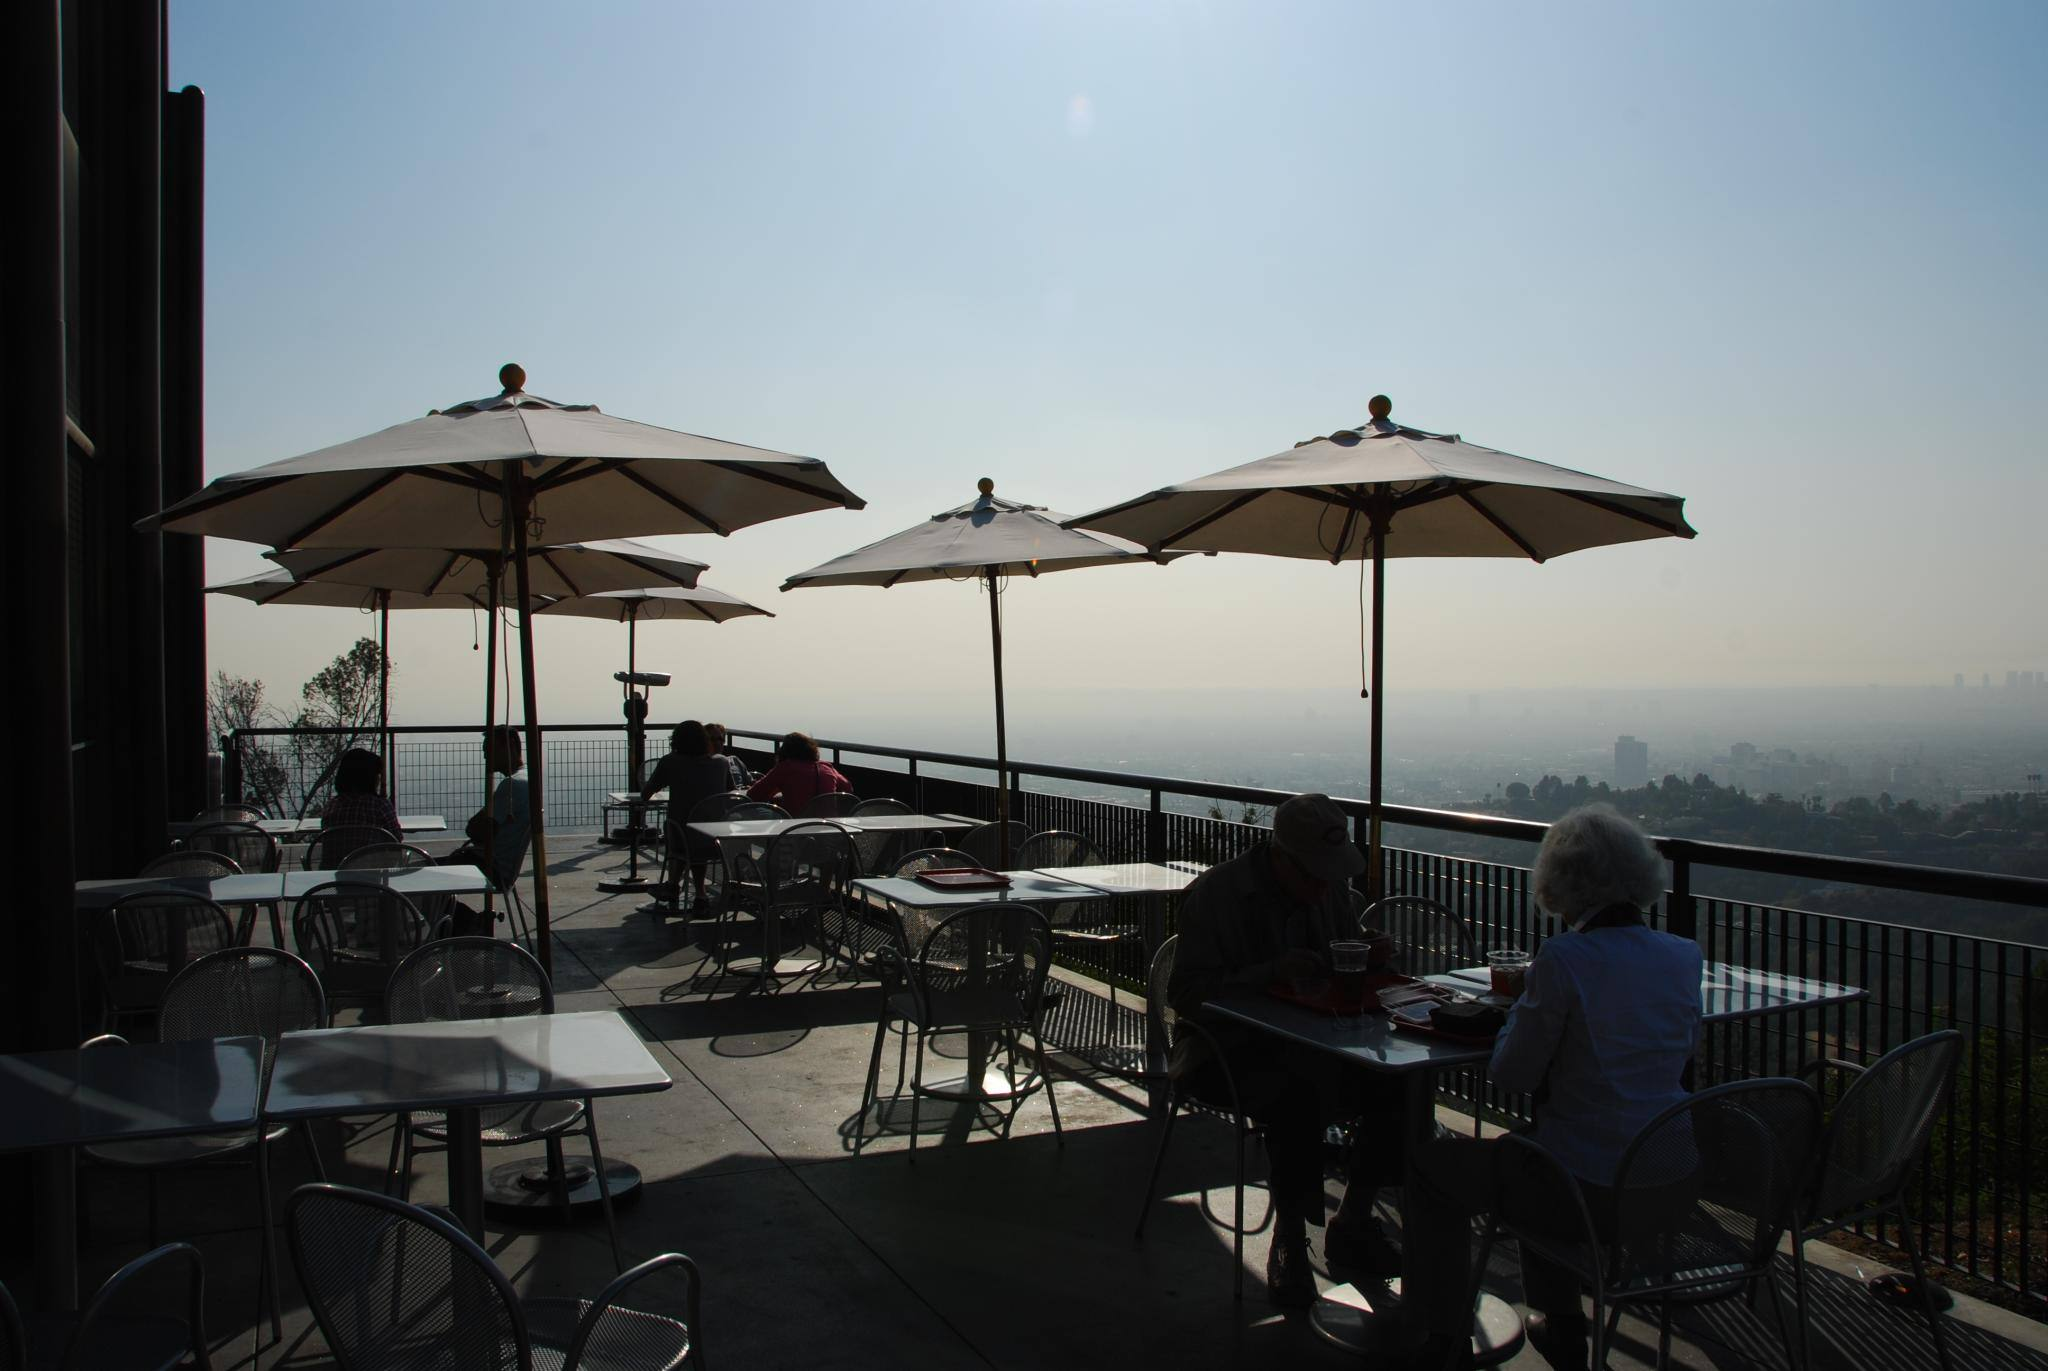 Cafe at the End of the Universe at Griffith Observatory